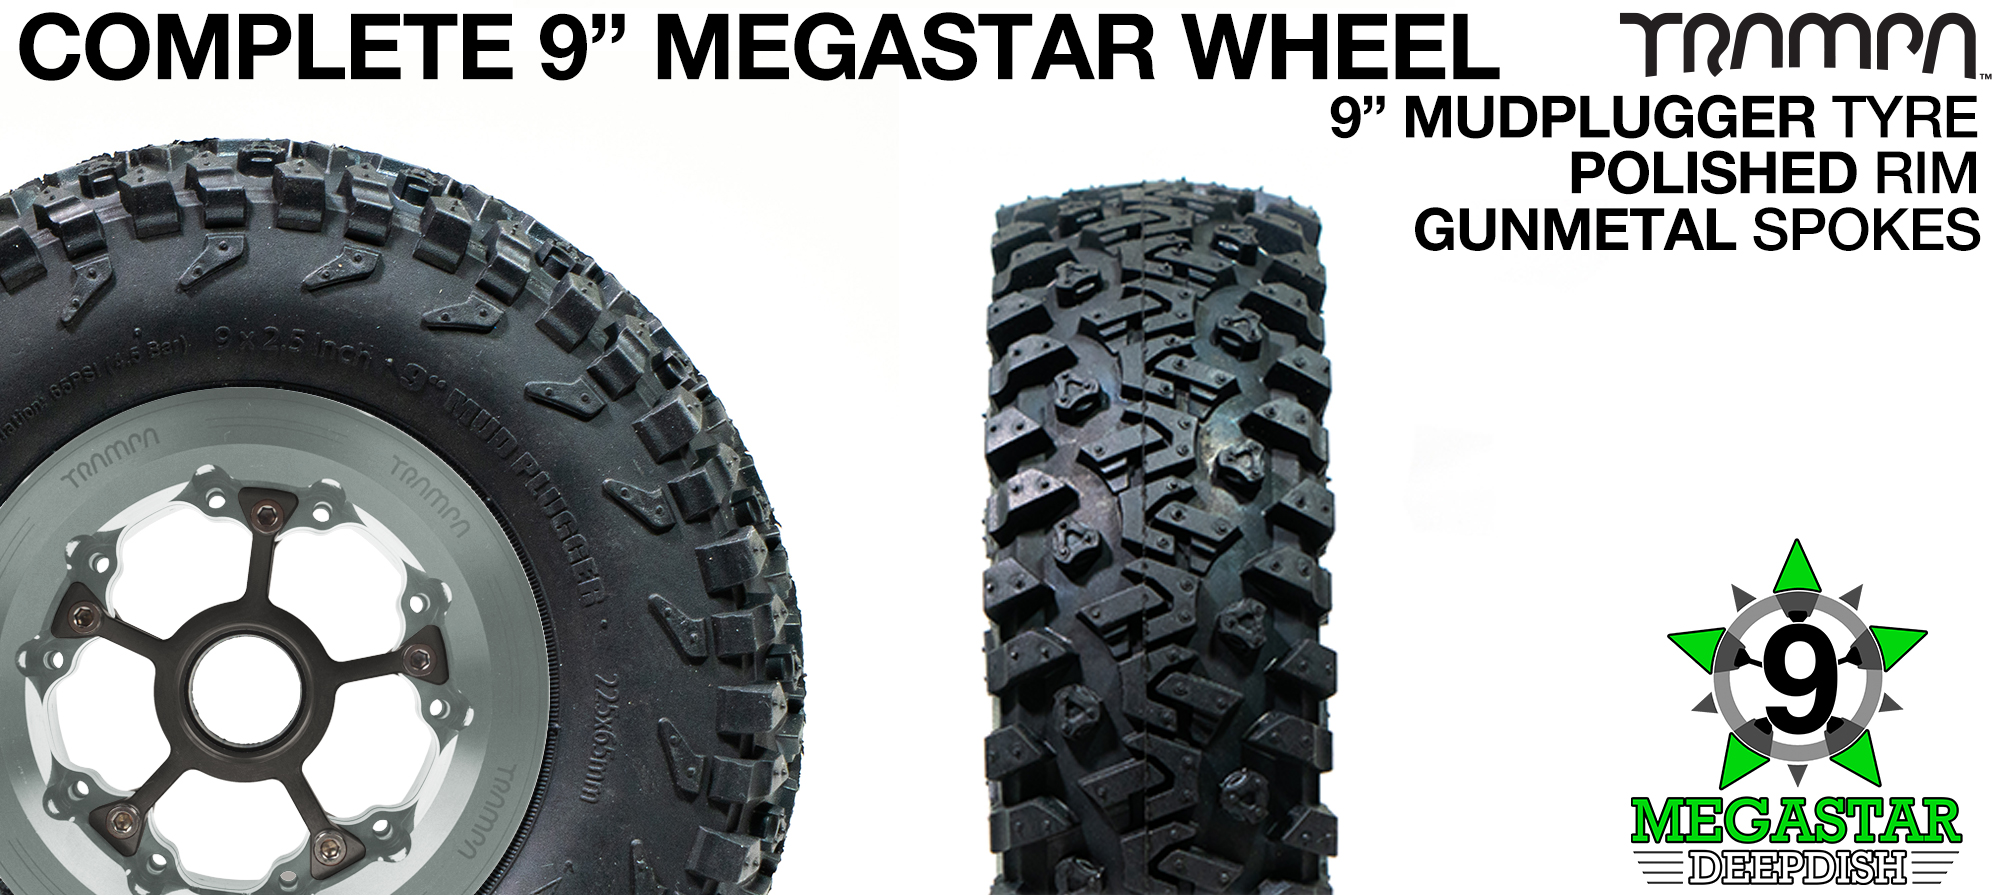 POLISHED 9 inch Deep-Dish MEGASTARS Rim with GUNMETAL Spokes & 9 Inch MUDPLUGGER Tyre